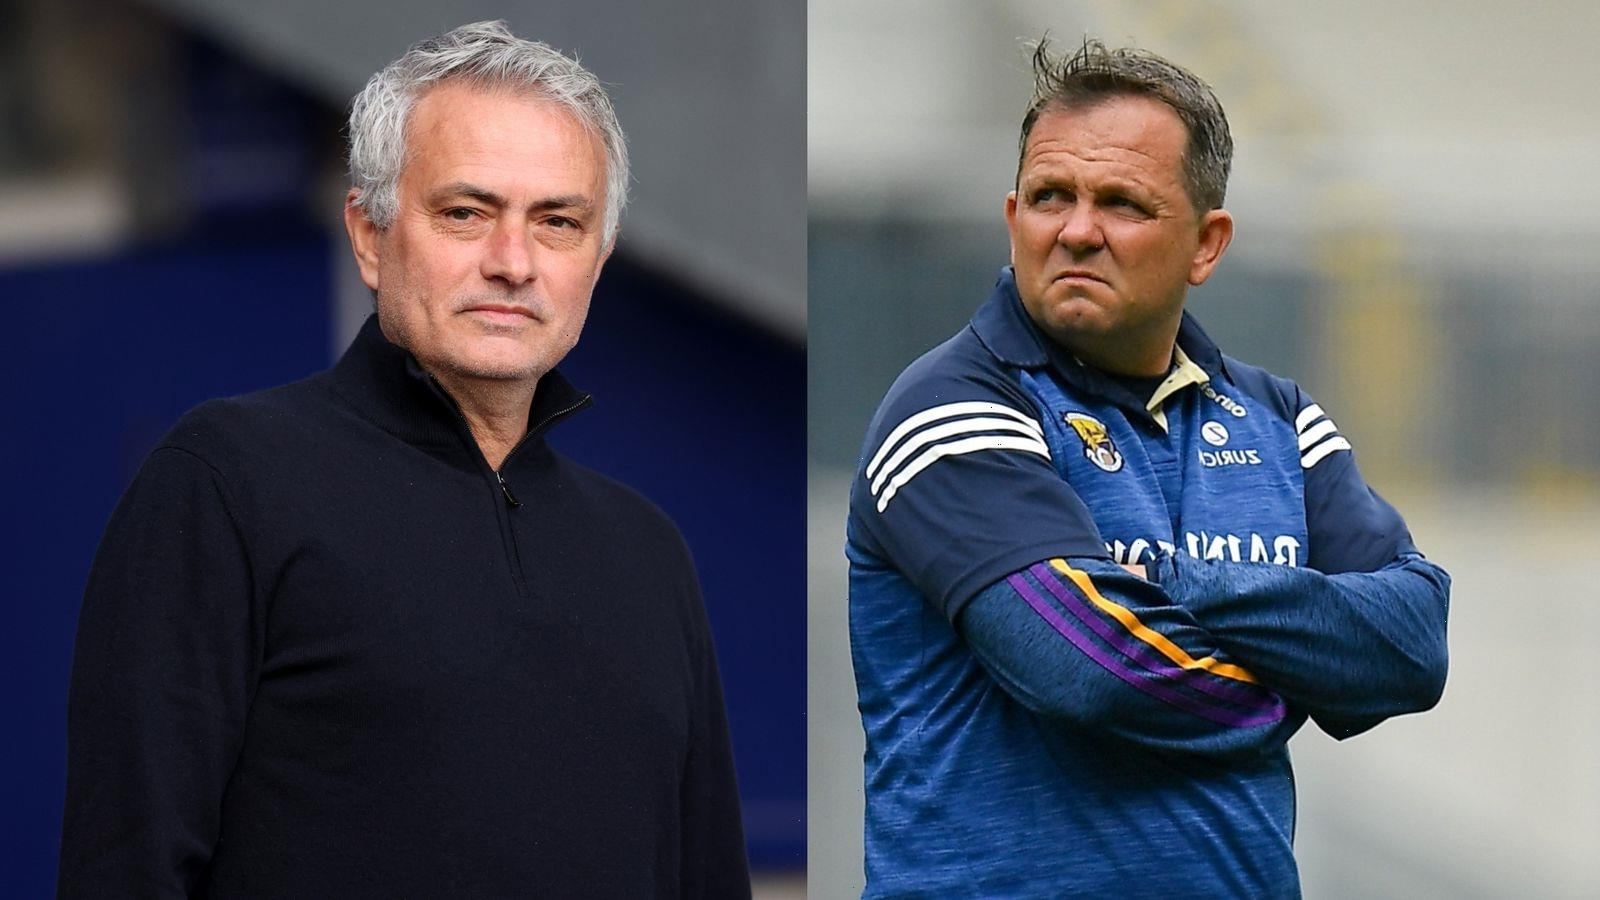 Davy Fitzgerald takes the focus away from his players in a similar fashion to Jose Mourinho, says Anthony Nash